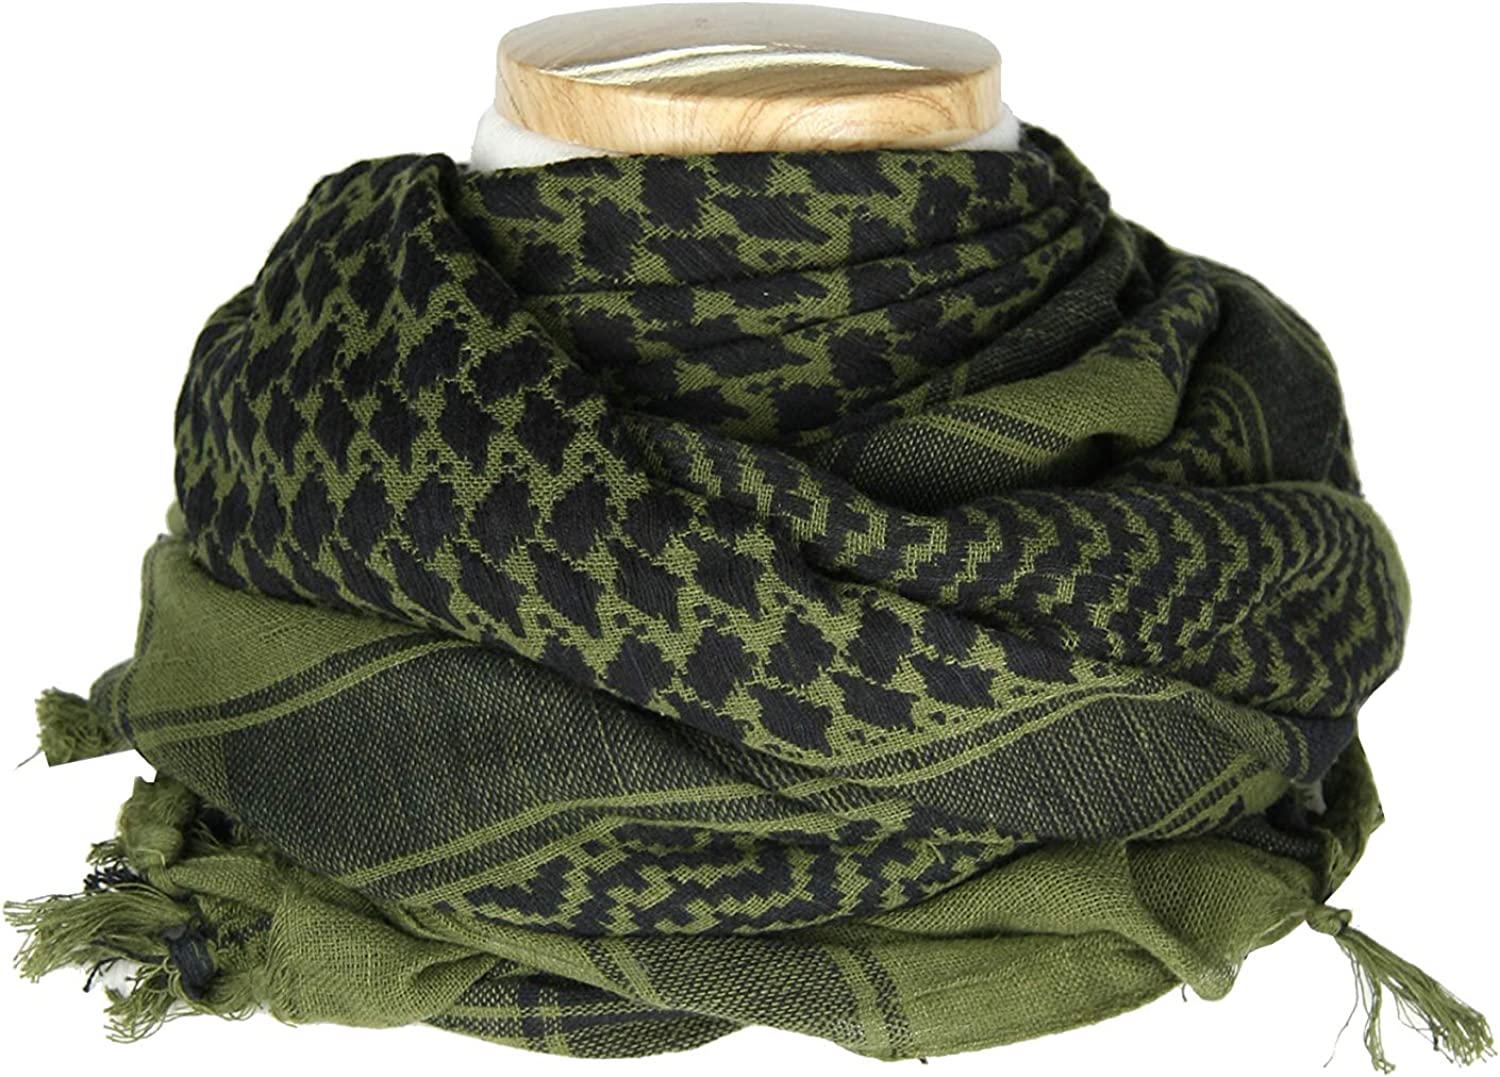 Shemagh tactical Scarf with Tassel Military Desert Keffiyeh Head Neck Scarf Arab Wrap 100/% Cotton